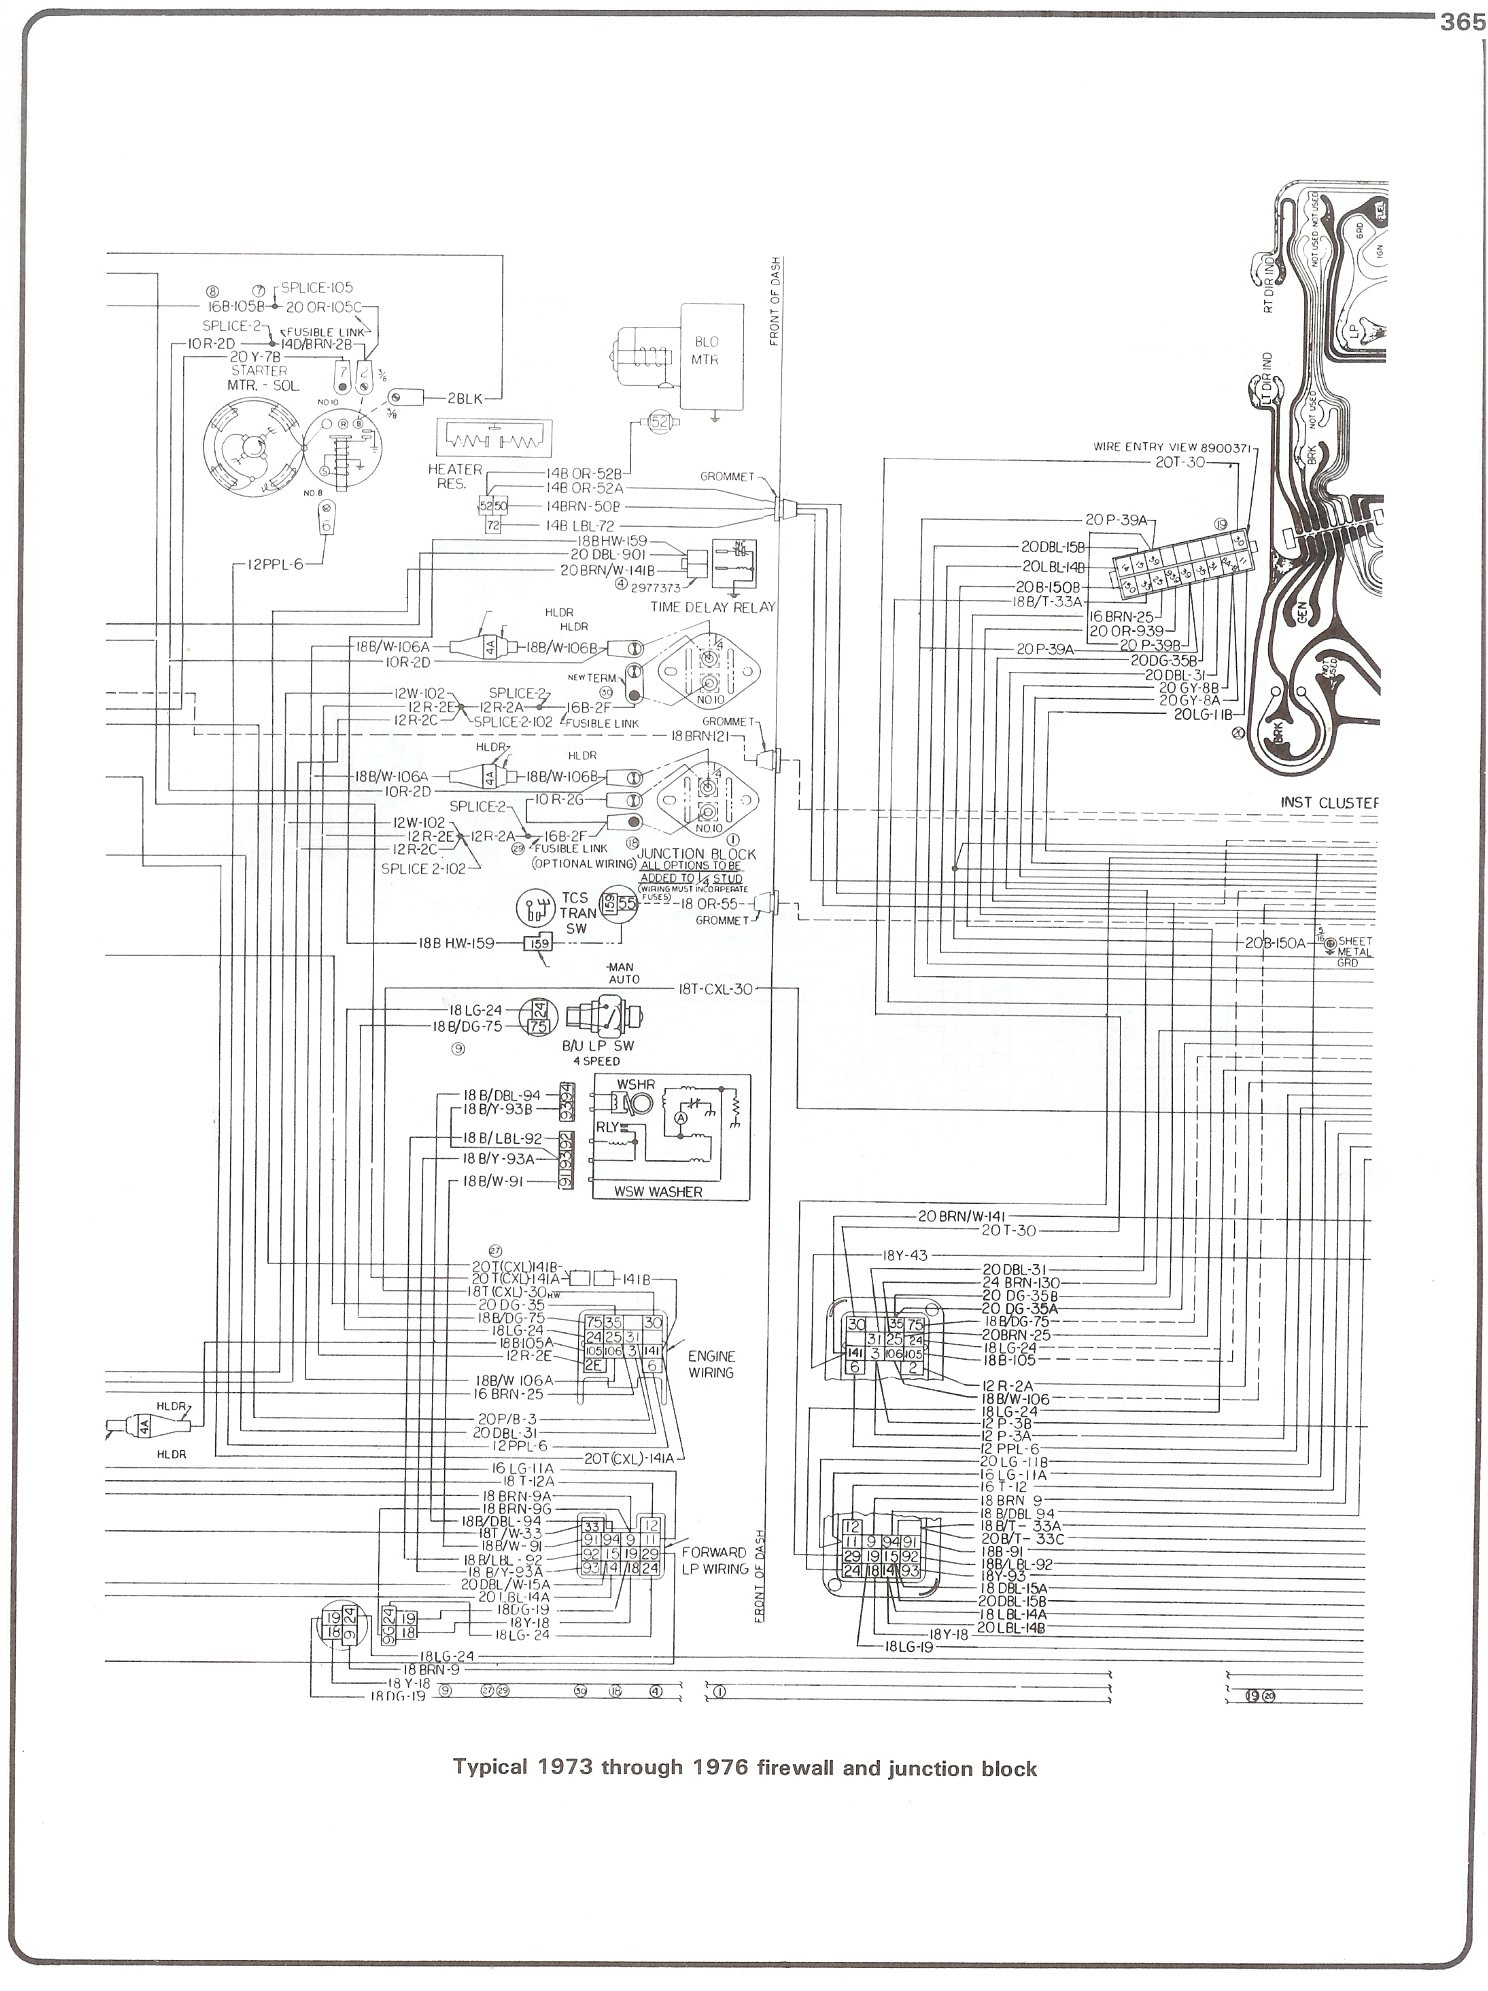 Complete 73 87 Wiring Diagrams Pictures Get Free Image About Diagram 76 Firewall Junction